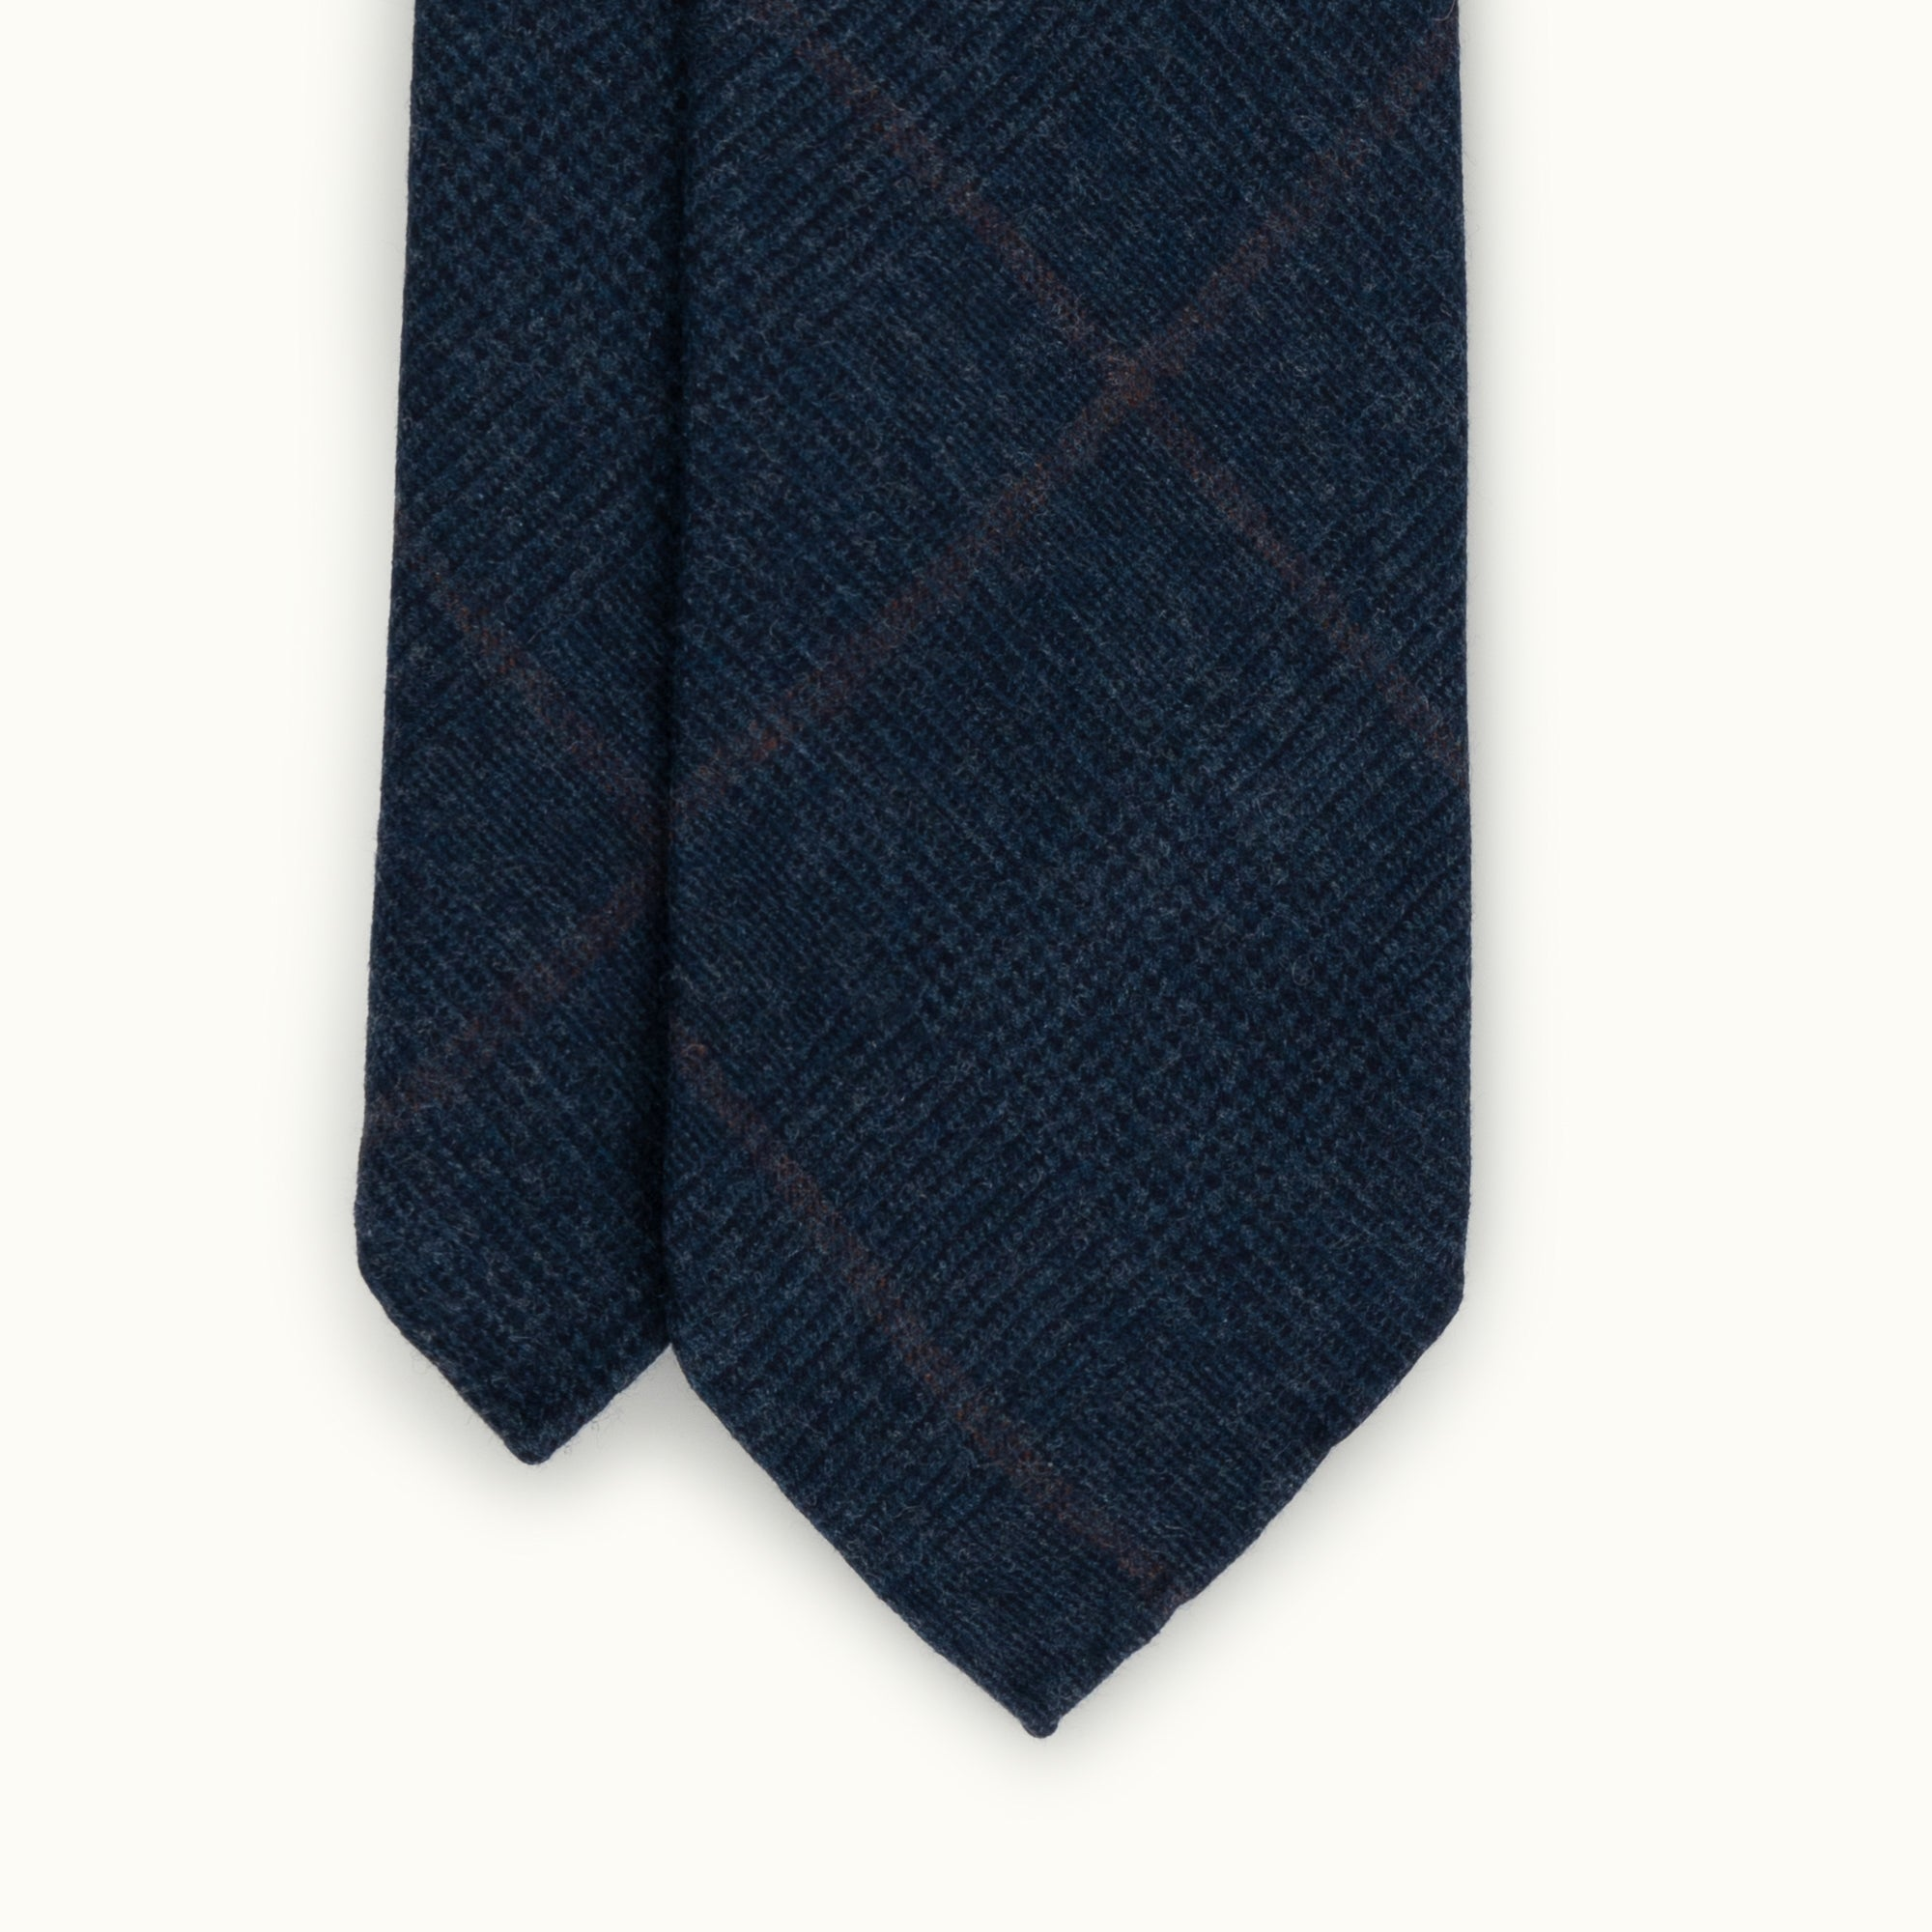 Navy Prince of Wales Fox Flannel tie